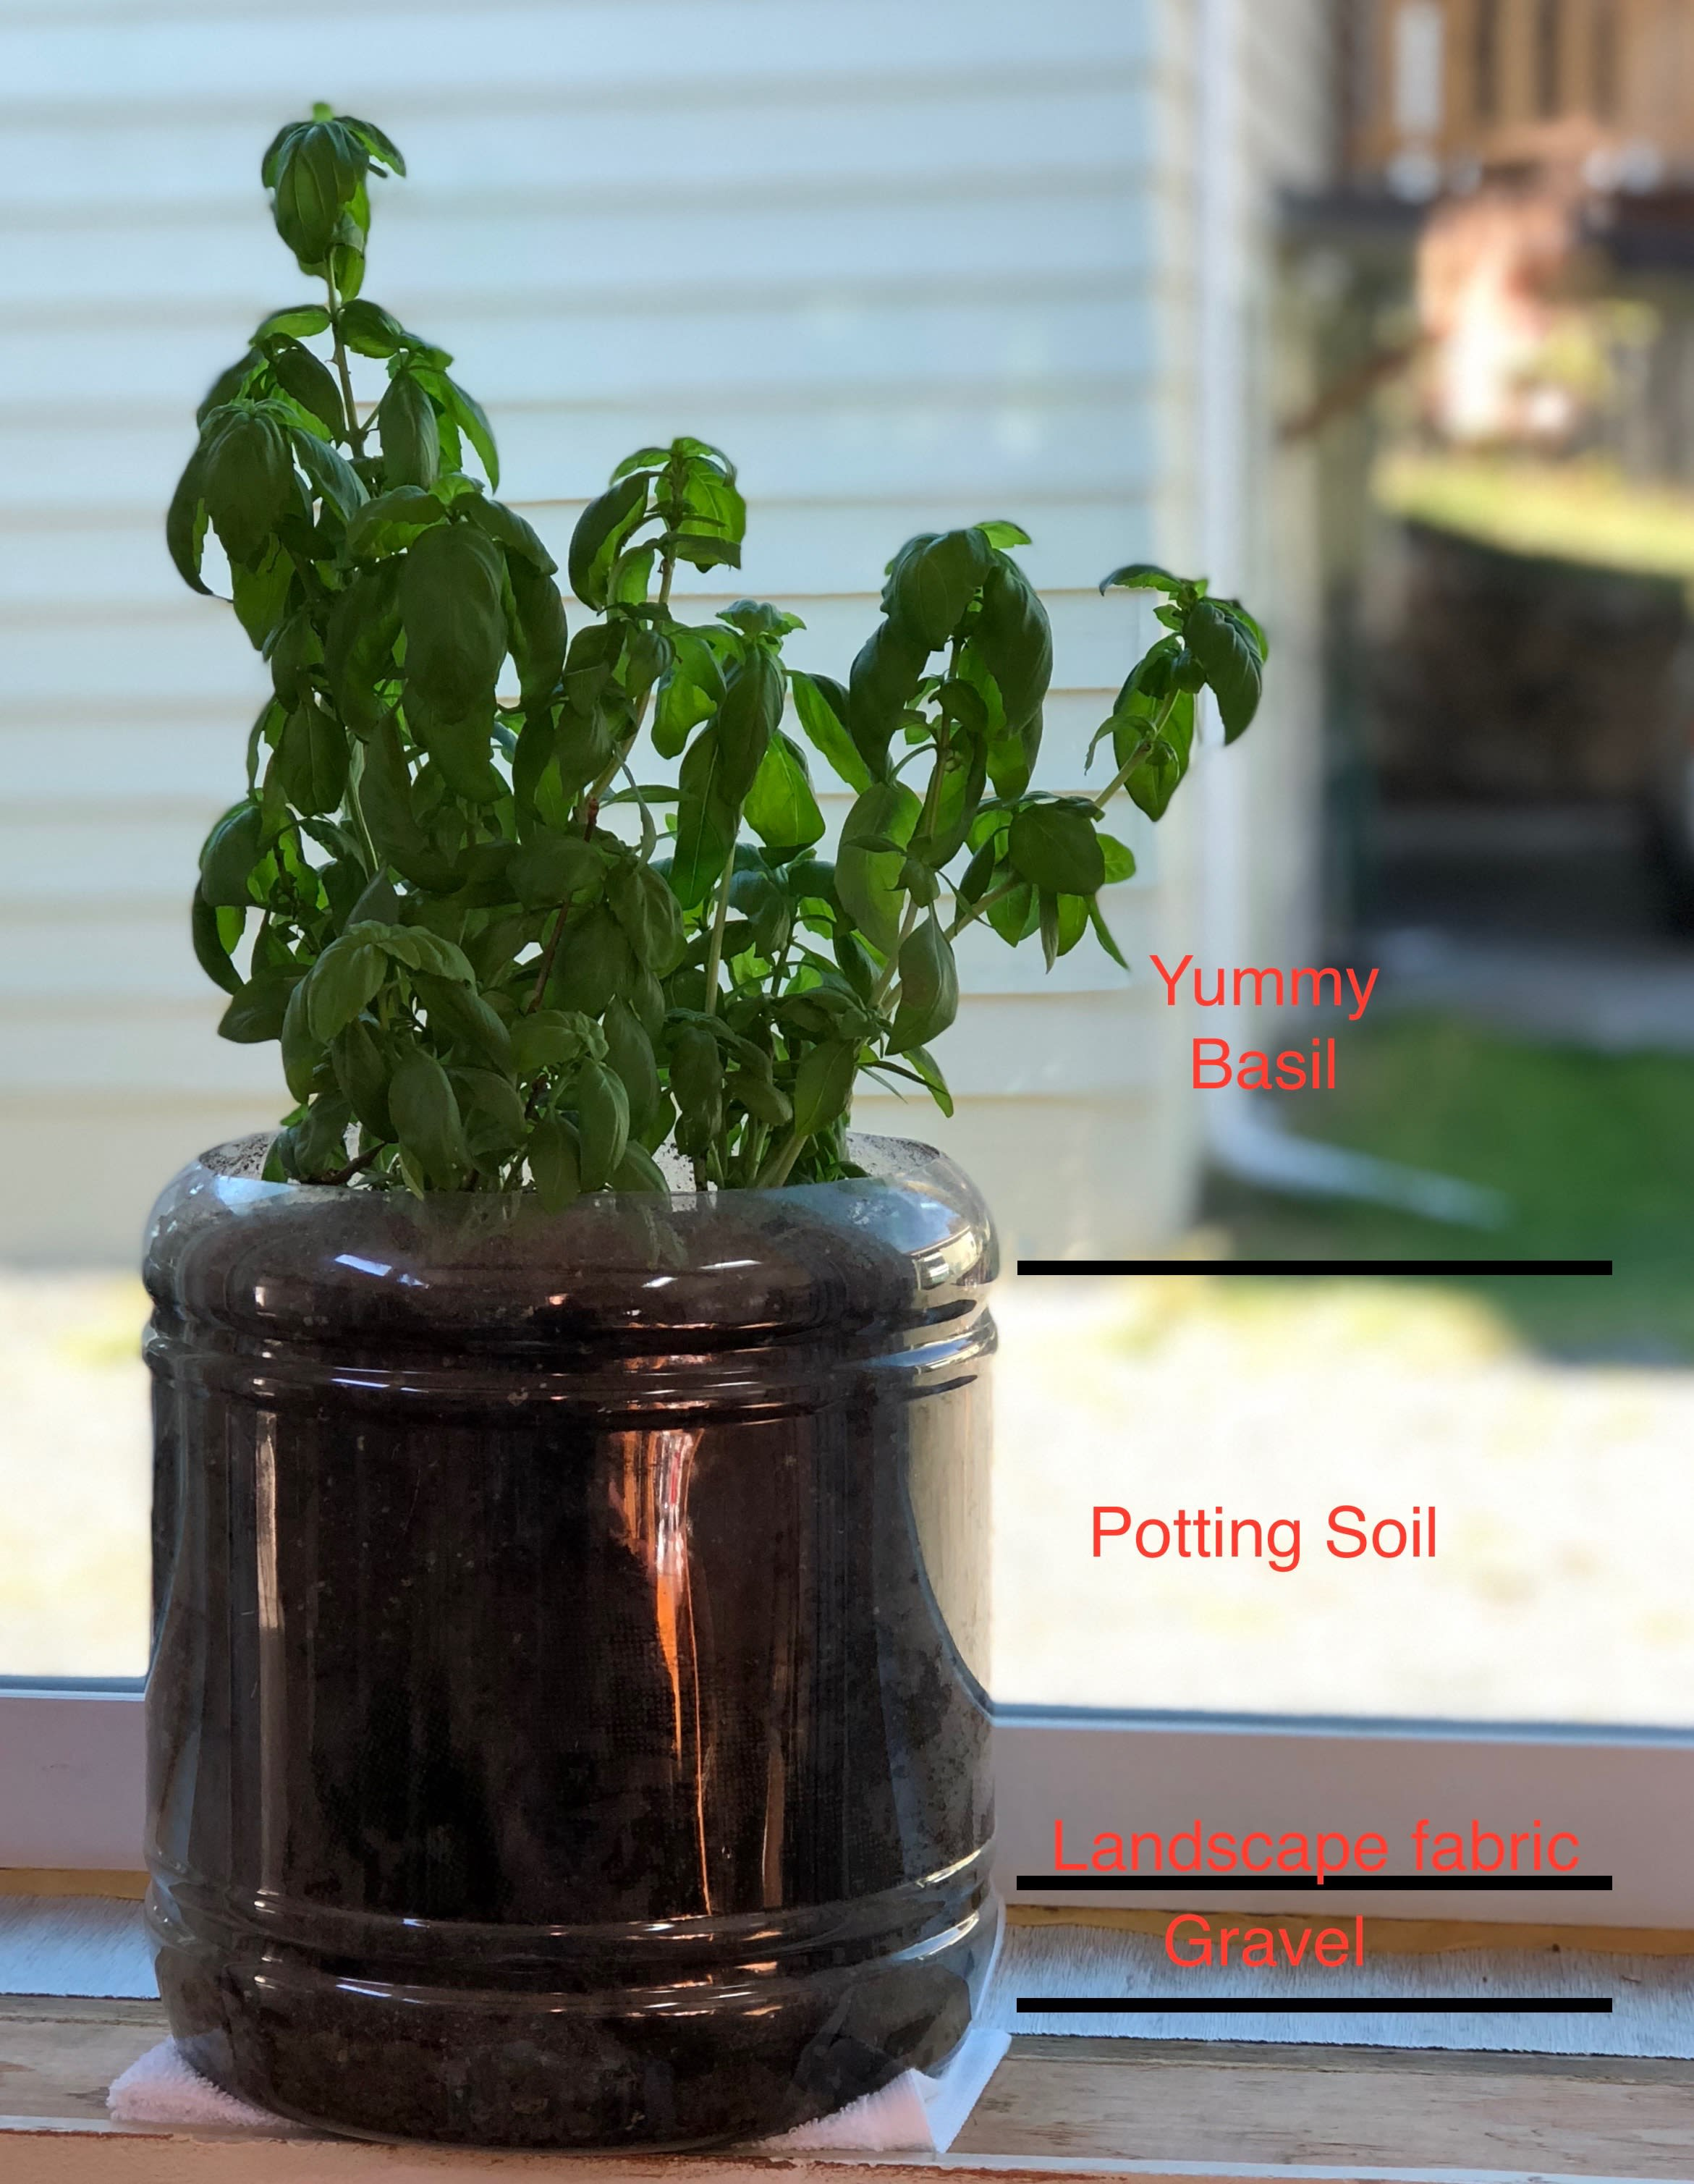 Basil plant, potted in a Utz Cheese Ball container